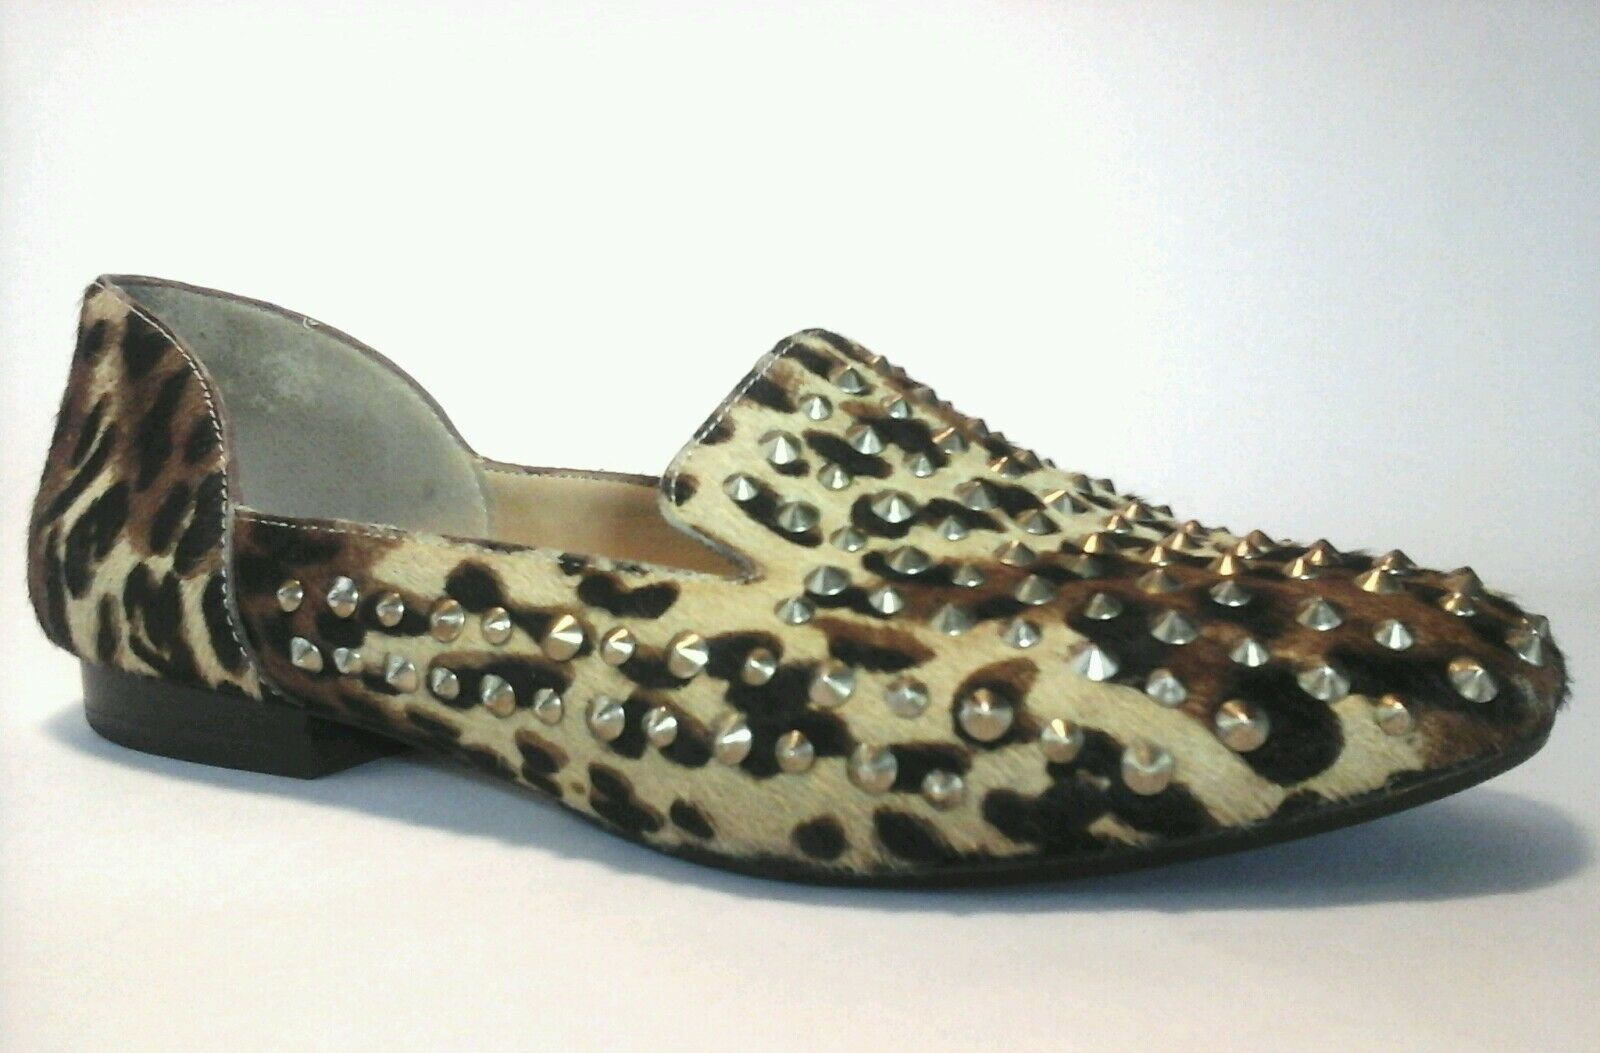 Kenneth Cole Women Leather Cheetah Animal Print Studs Loafer Loafer Studs Shoes US 6 1796ca